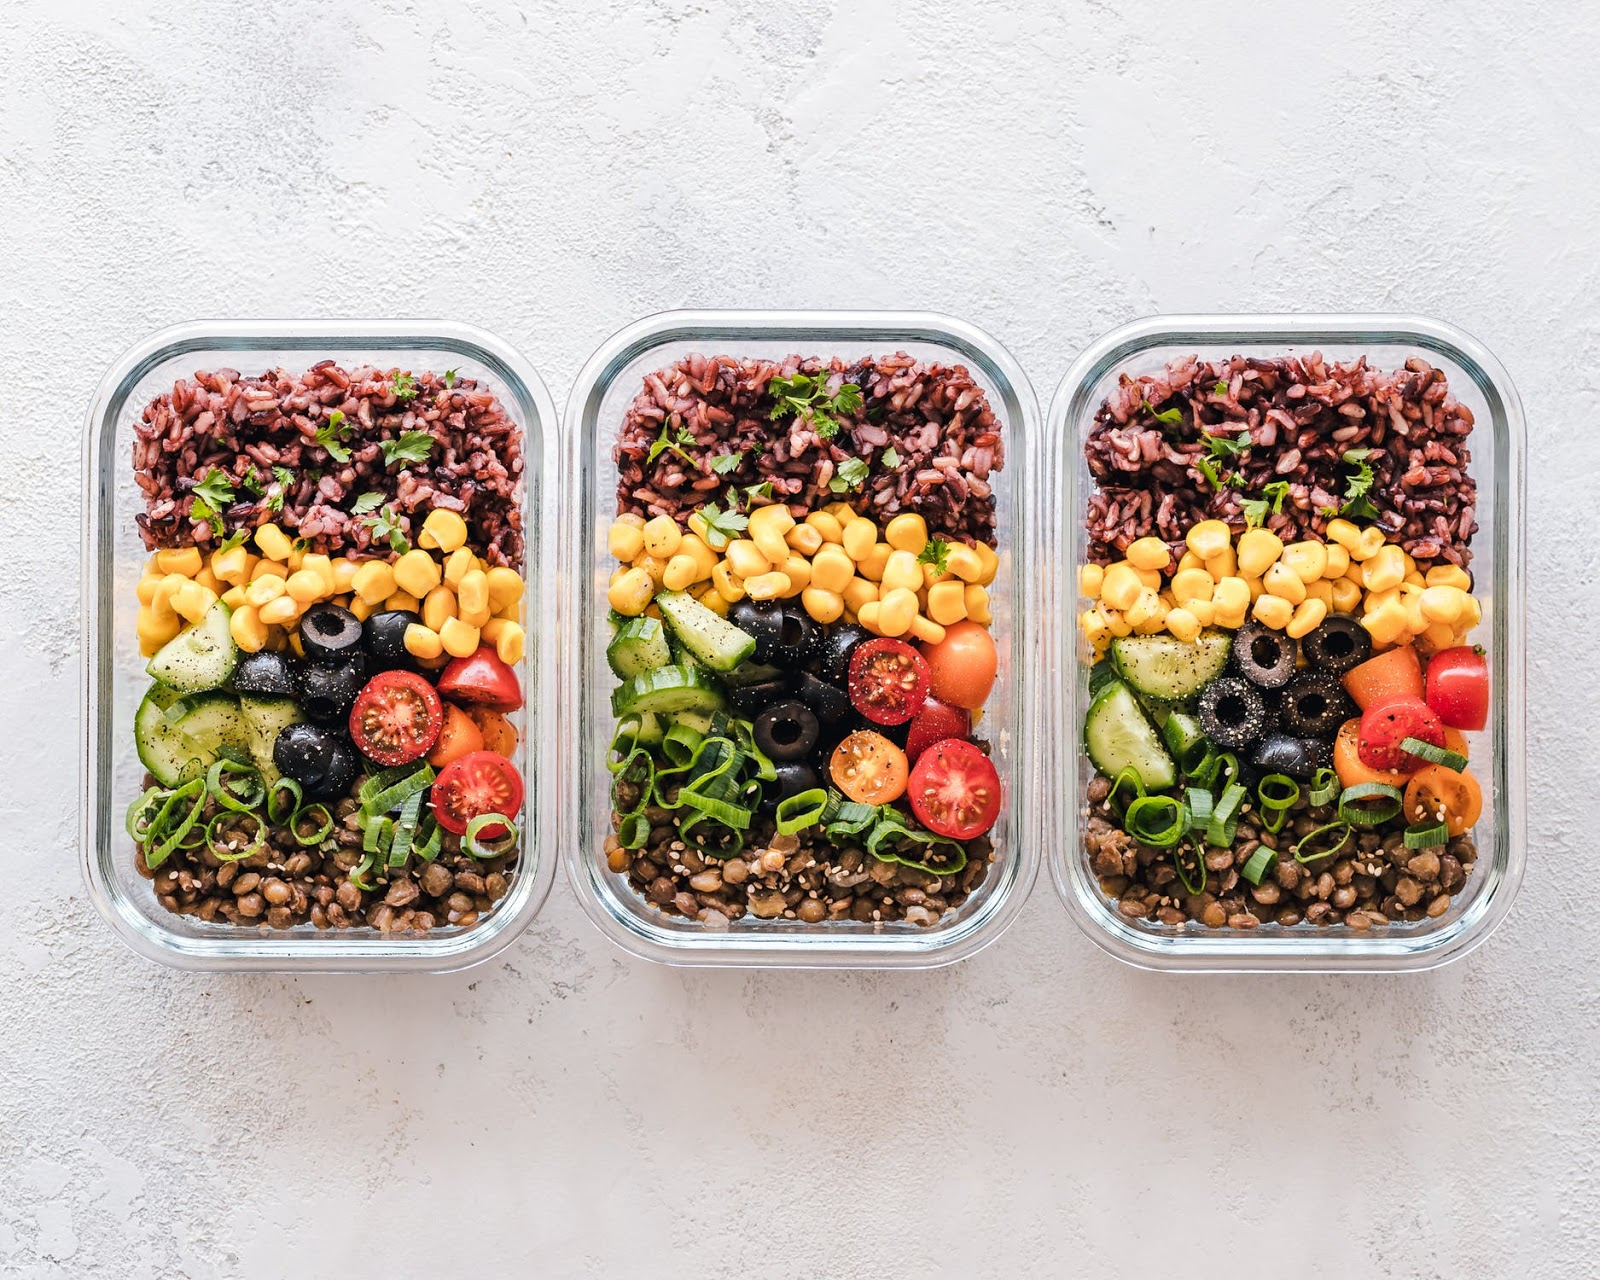 Prepared meals delivered: Three identical meals prepped in food storage containers